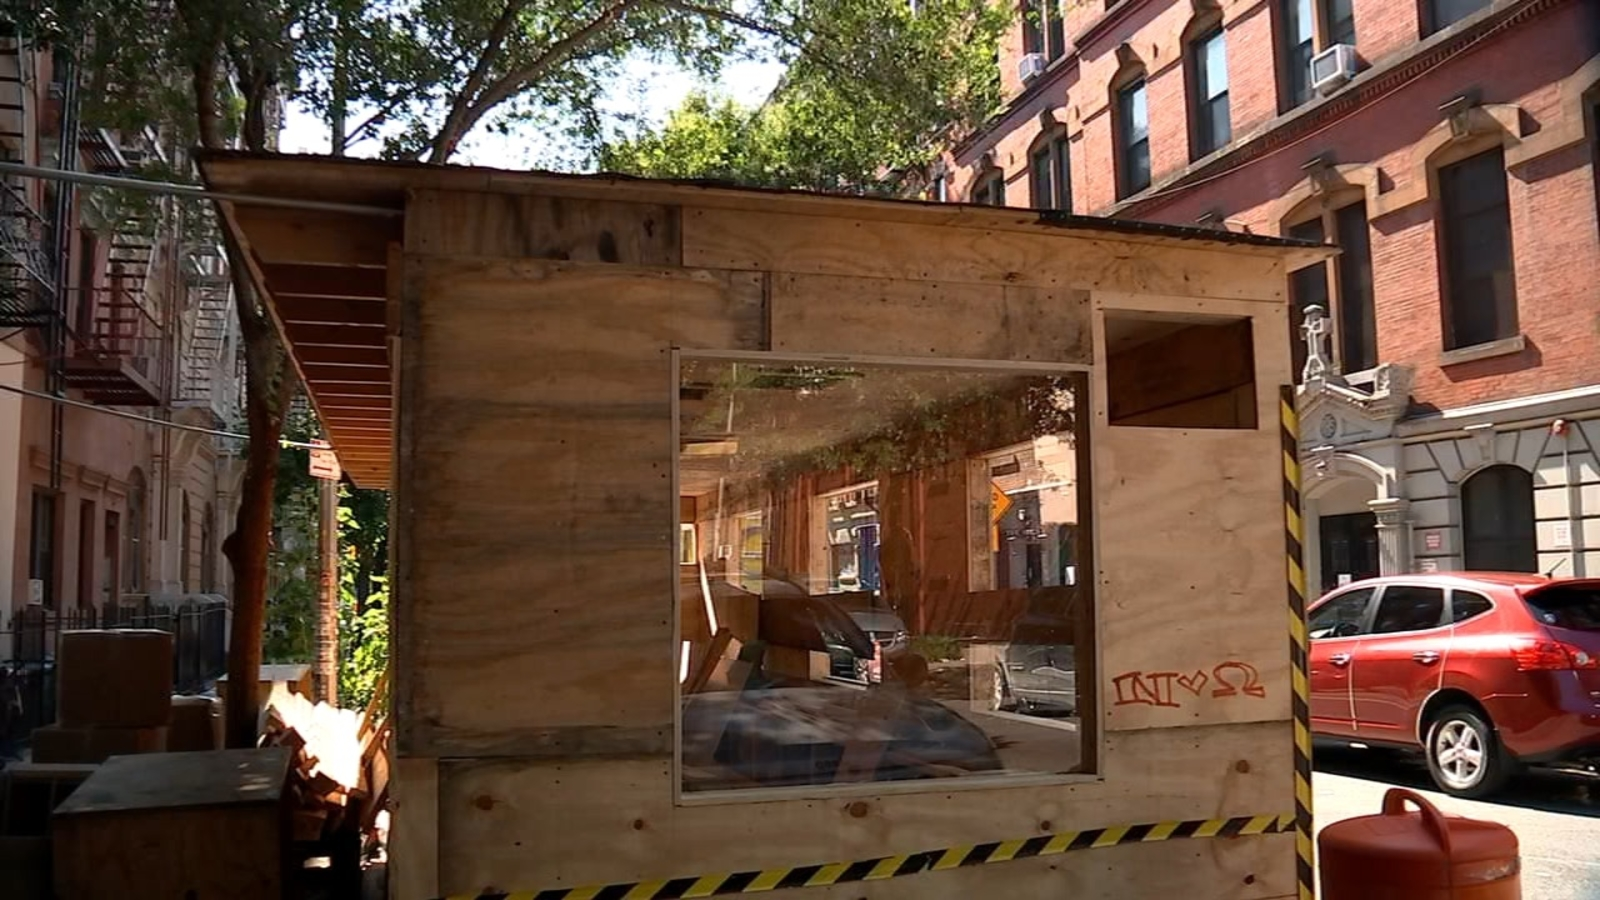 Two-story outdoor dining structure raising eyebrows in the East Village